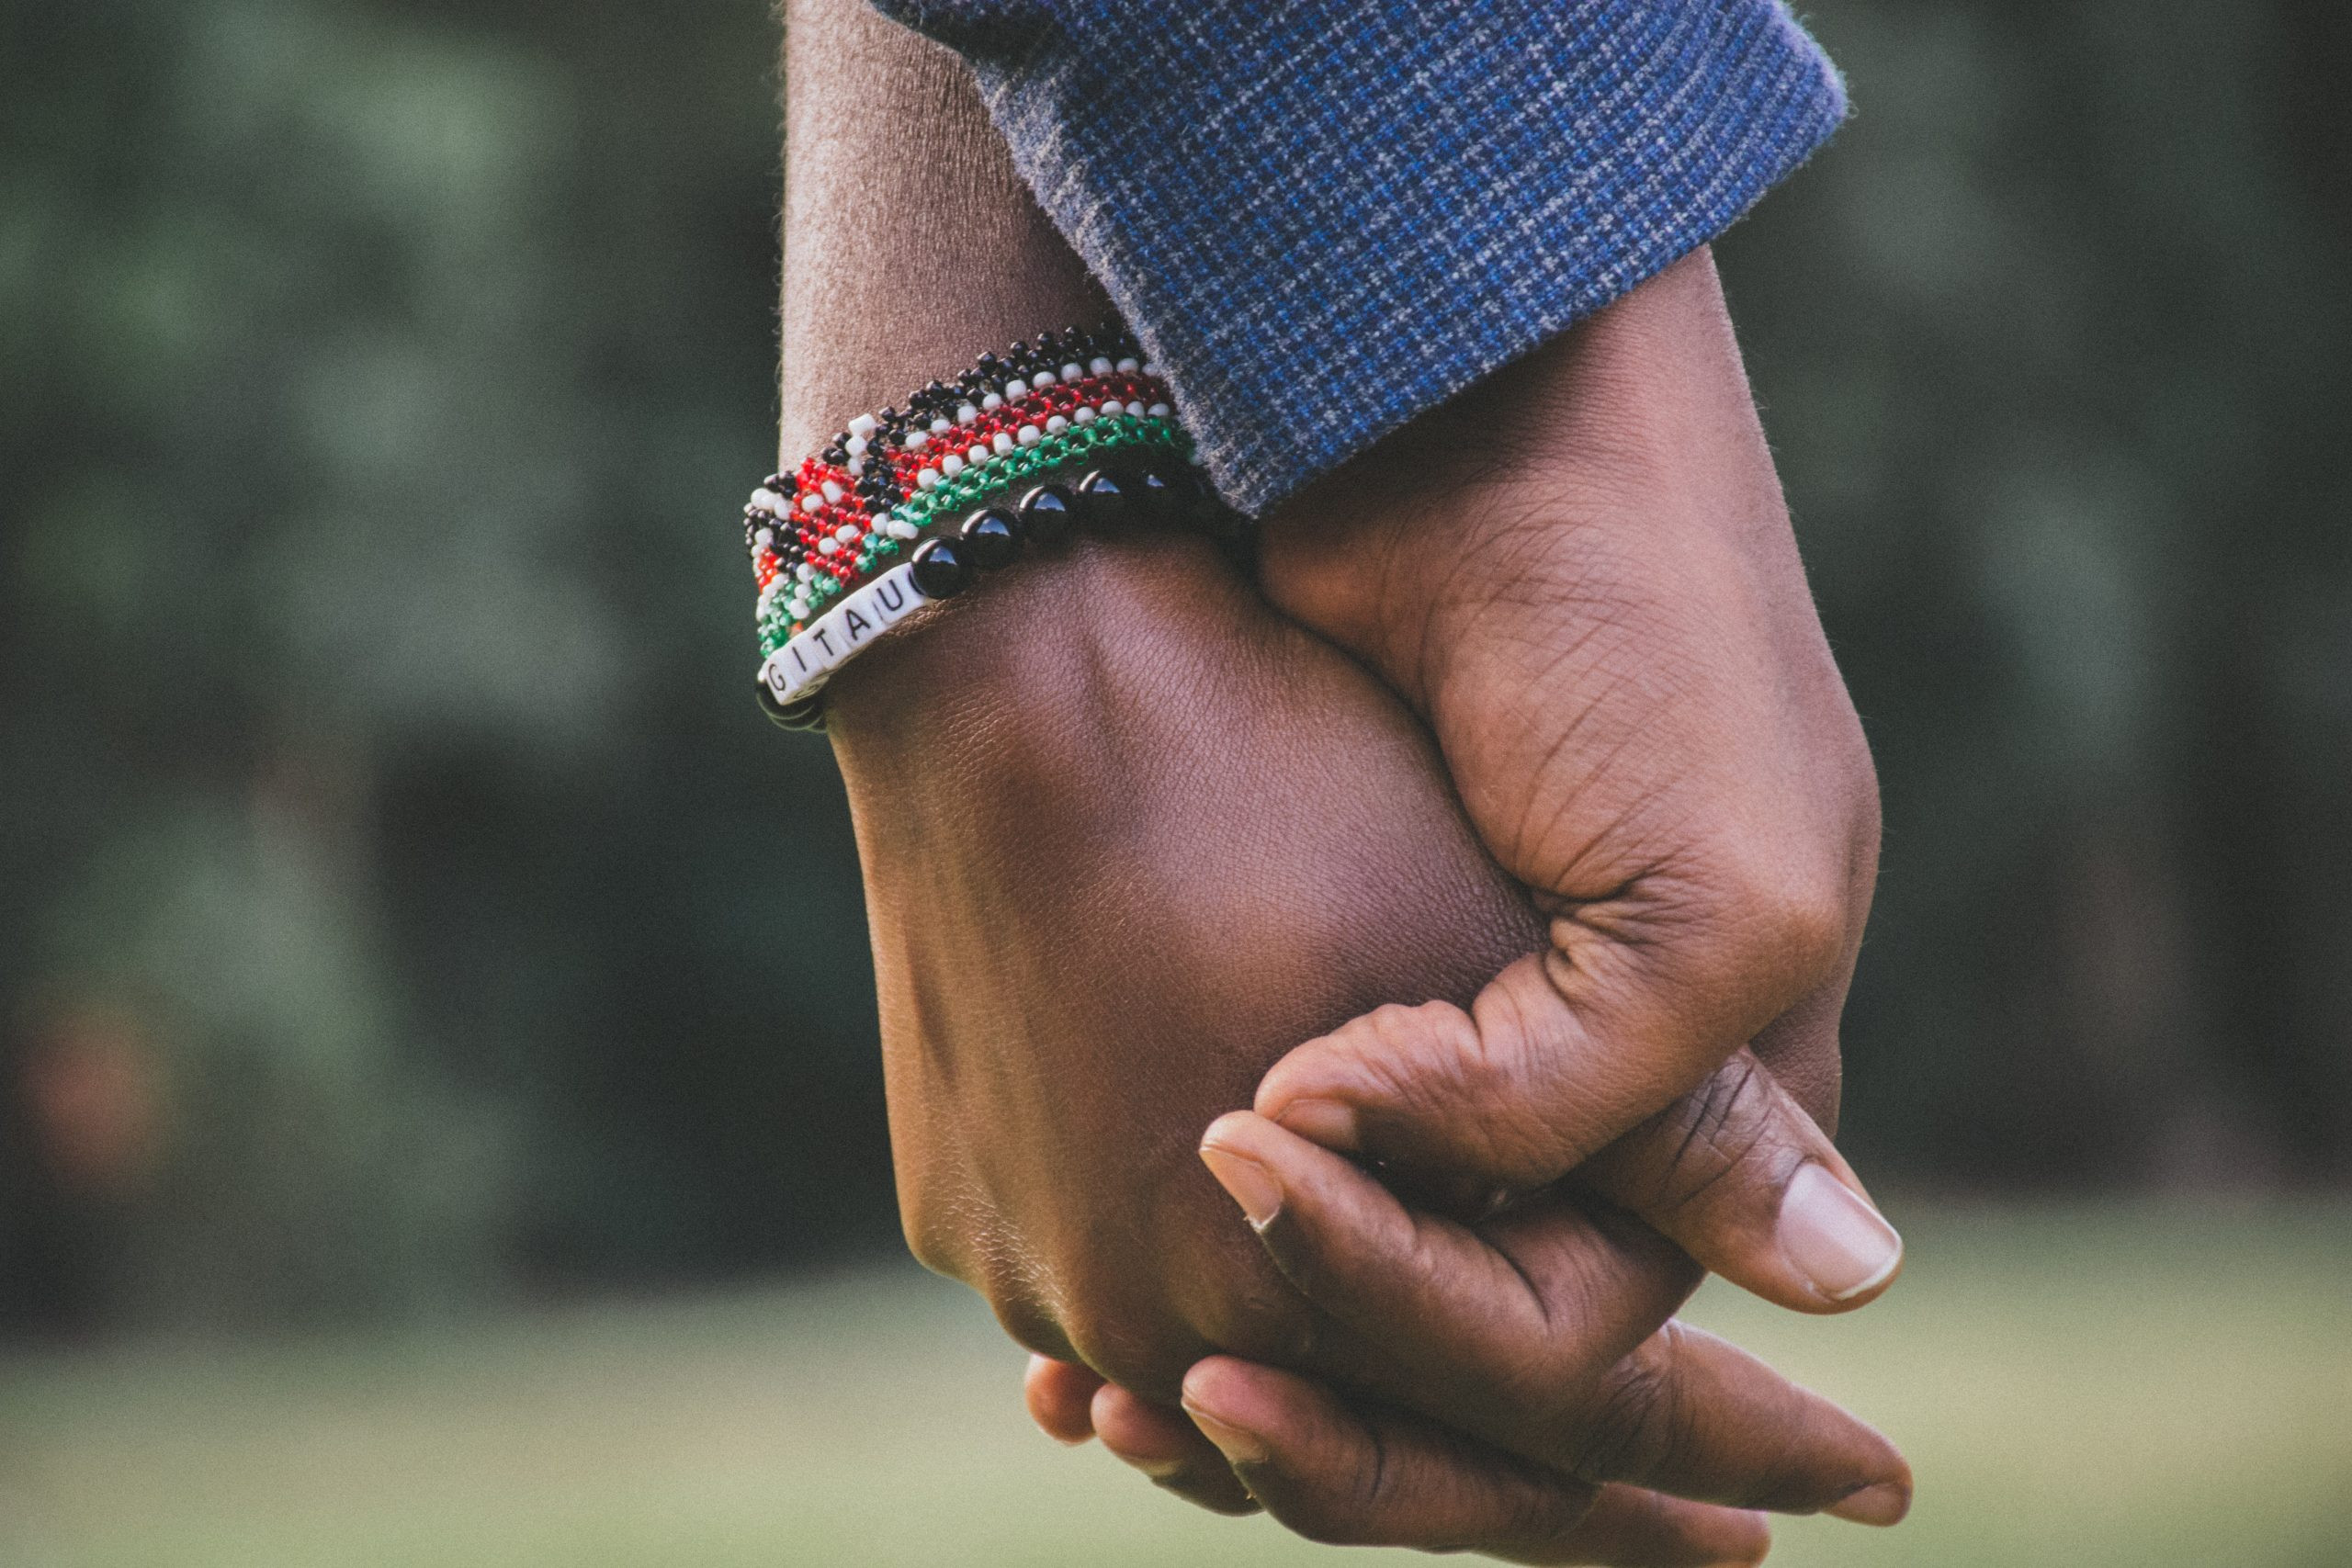 Two young people in a relationship holding hands.